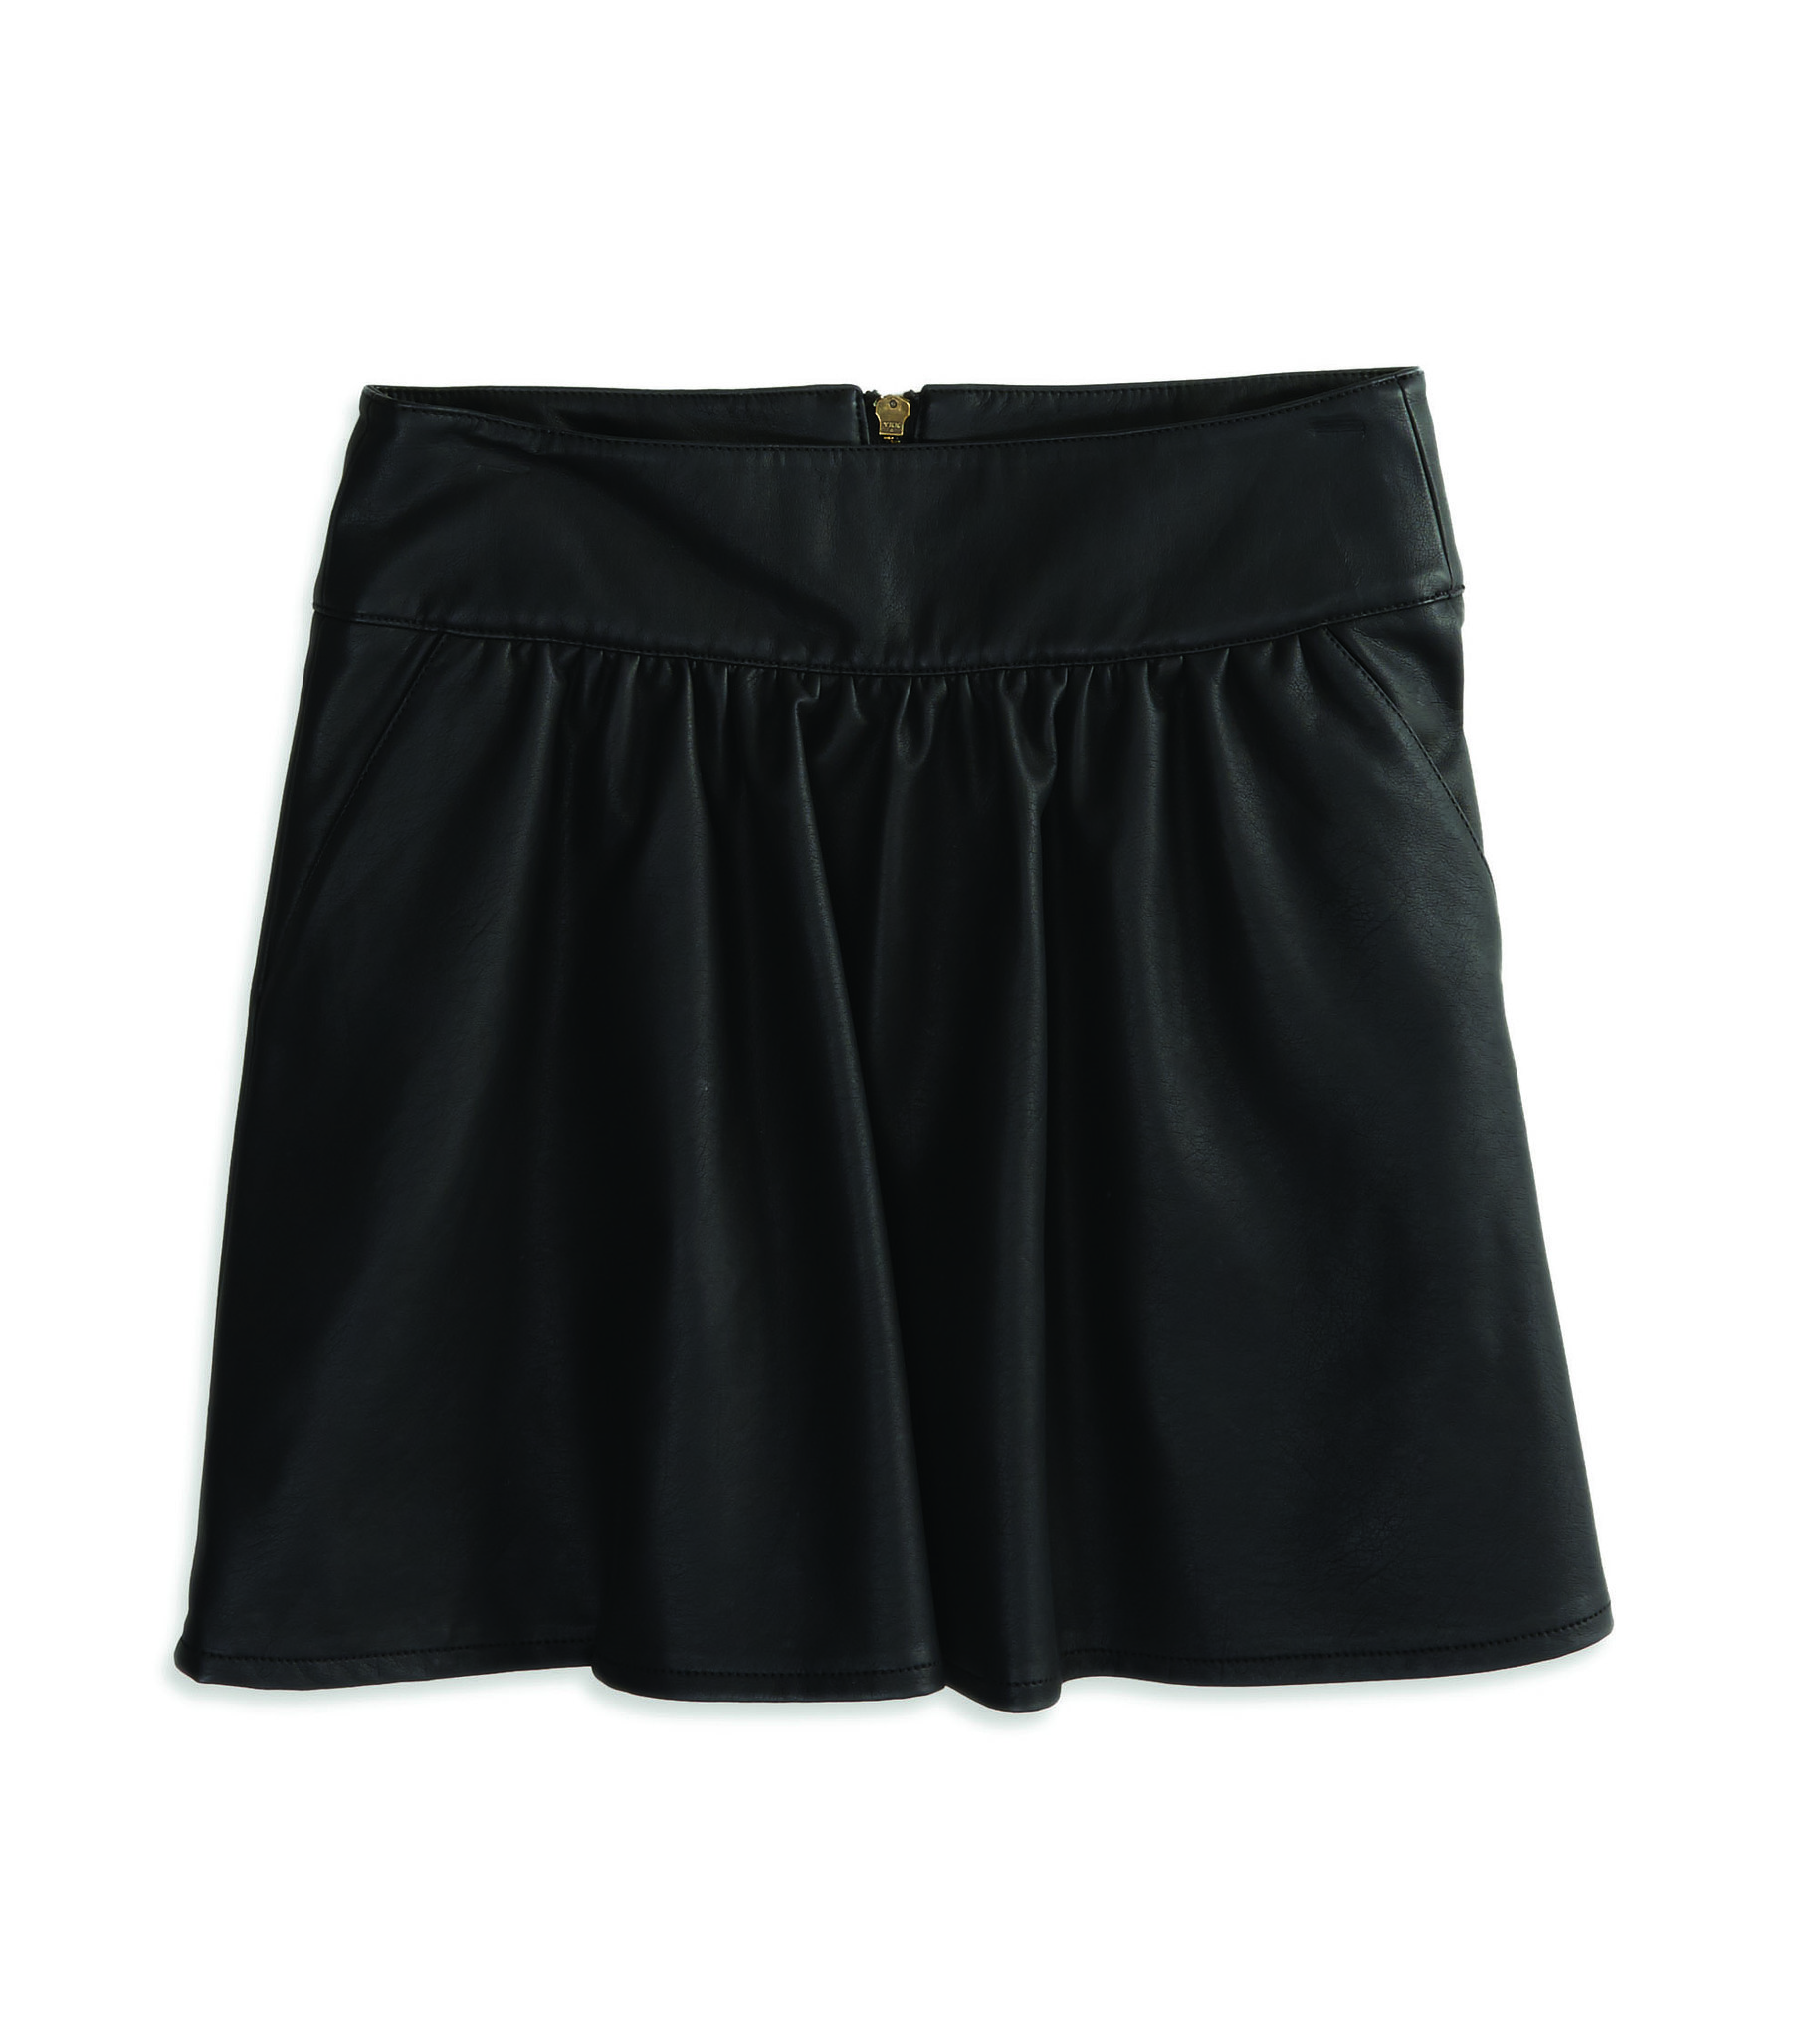 In classic black, American Eagle's simple mini ($50) is sure to fit in with